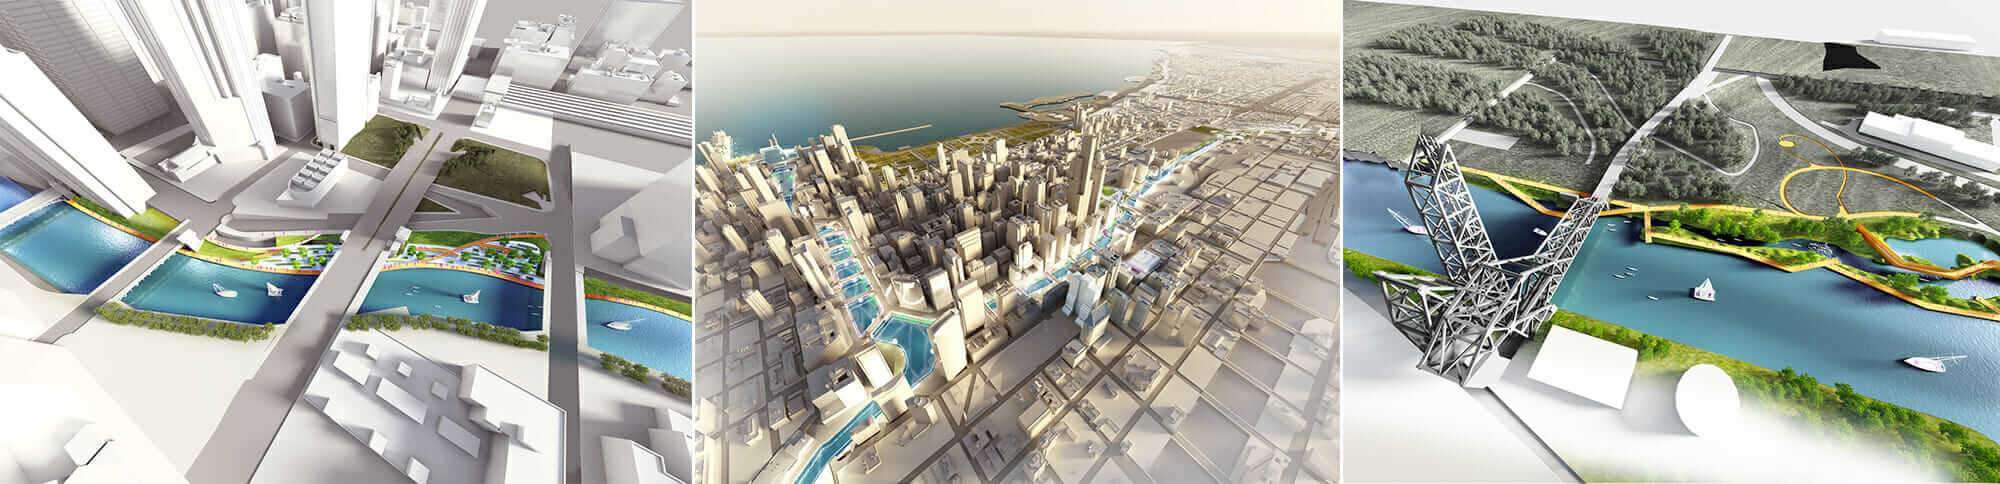 chicago river edge ideas lab rendering